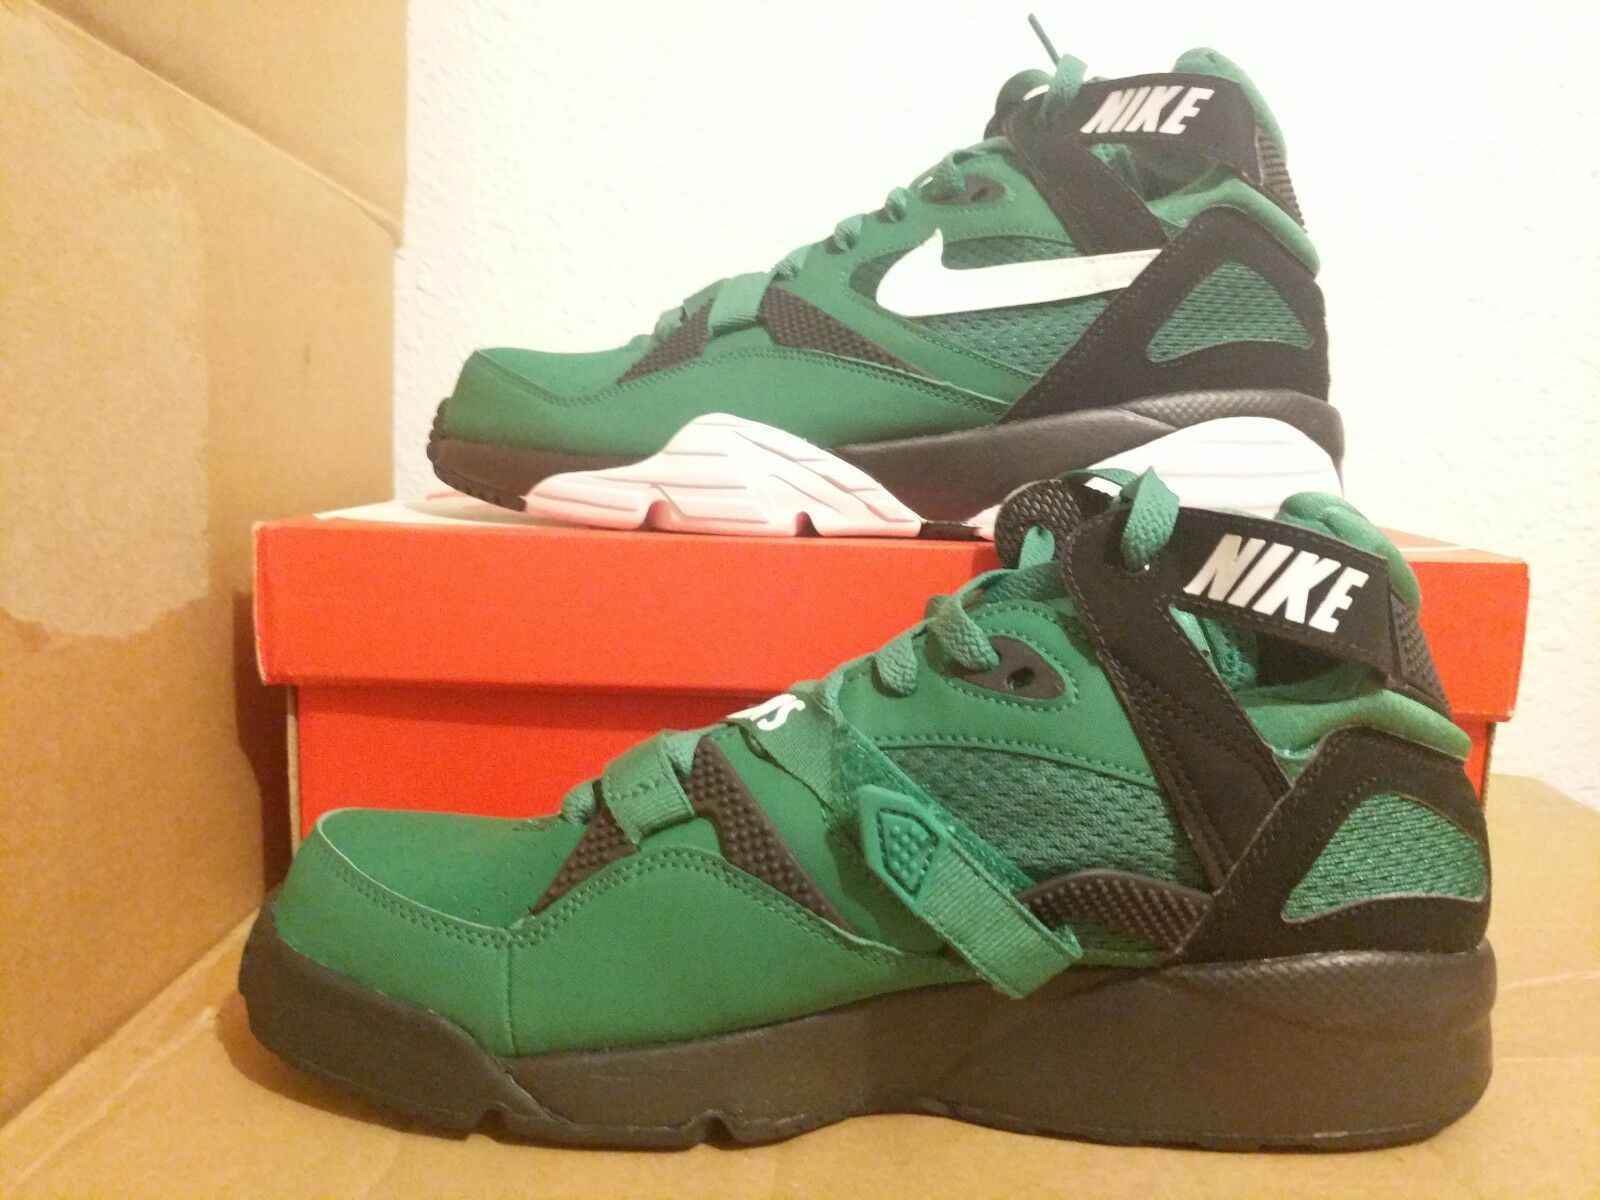 40500bb5a9f Philadelphia Eagles Air Trainer 91 QS QS QS NFL Supreme sz9 Philly Knows  615147 301 ad314b ...